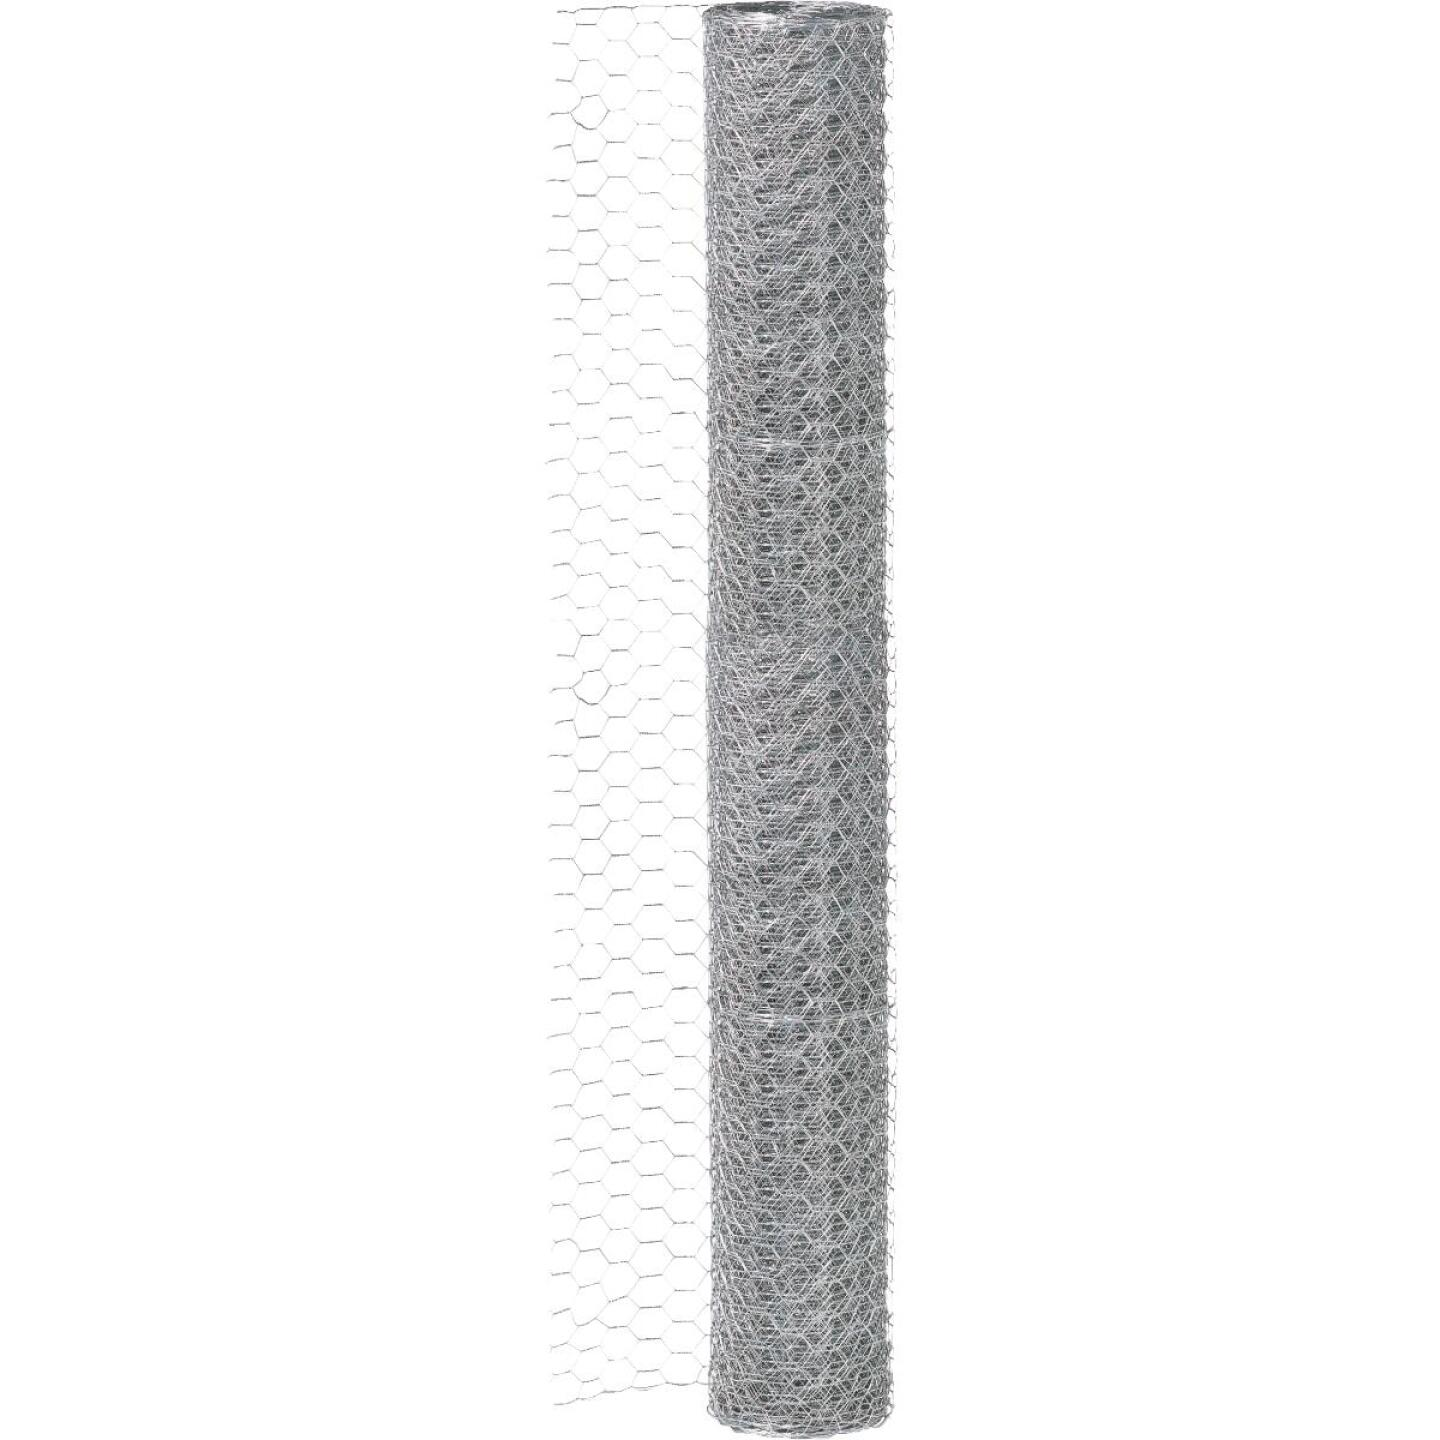 1 In. x 36 In. H. x 10 Ft. L. Hexagonal Wire Poultry Netting Image 3